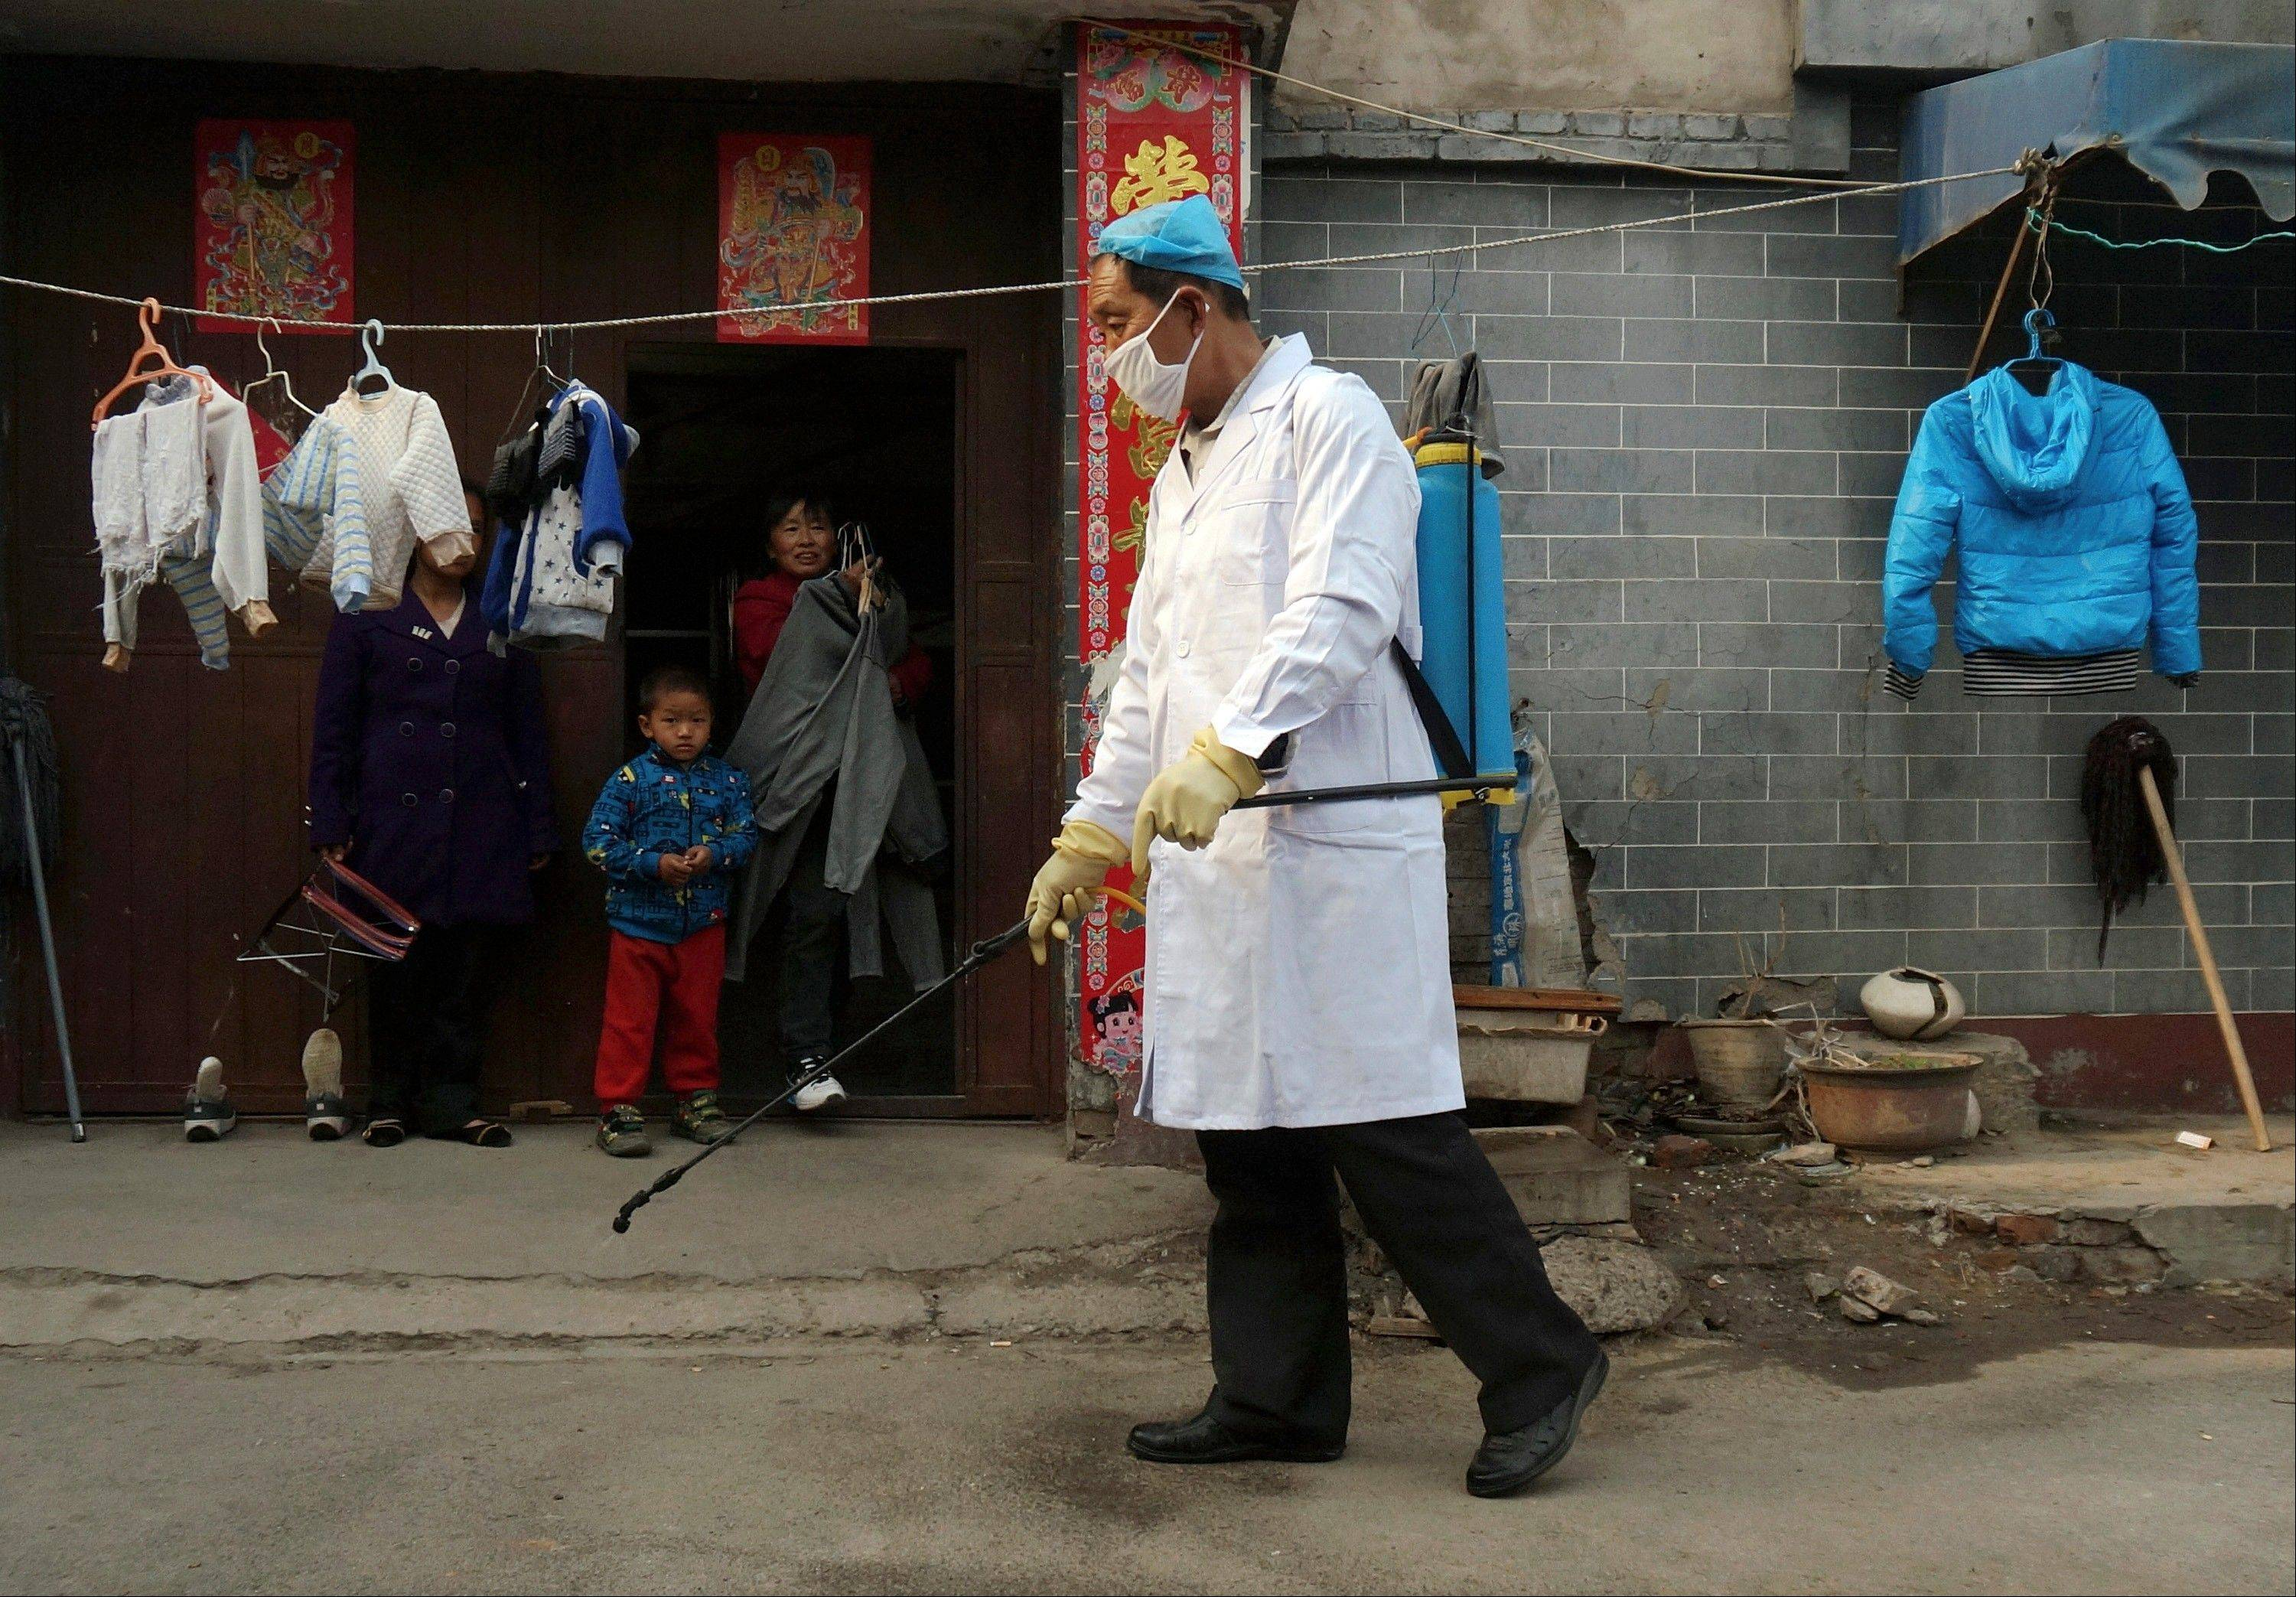 A family watches a worker spray disinfectant in Naidong village, where a boy tested positive for the H7N9 virus, in Beijing Monday. The new case of bird flu in China�s capital, a 4-year-old boy who displayed no symptoms, is adding to the unknowns about the latest outbreak that has caused 63 confirmed cases and 14 deaths, health officials said Monday.